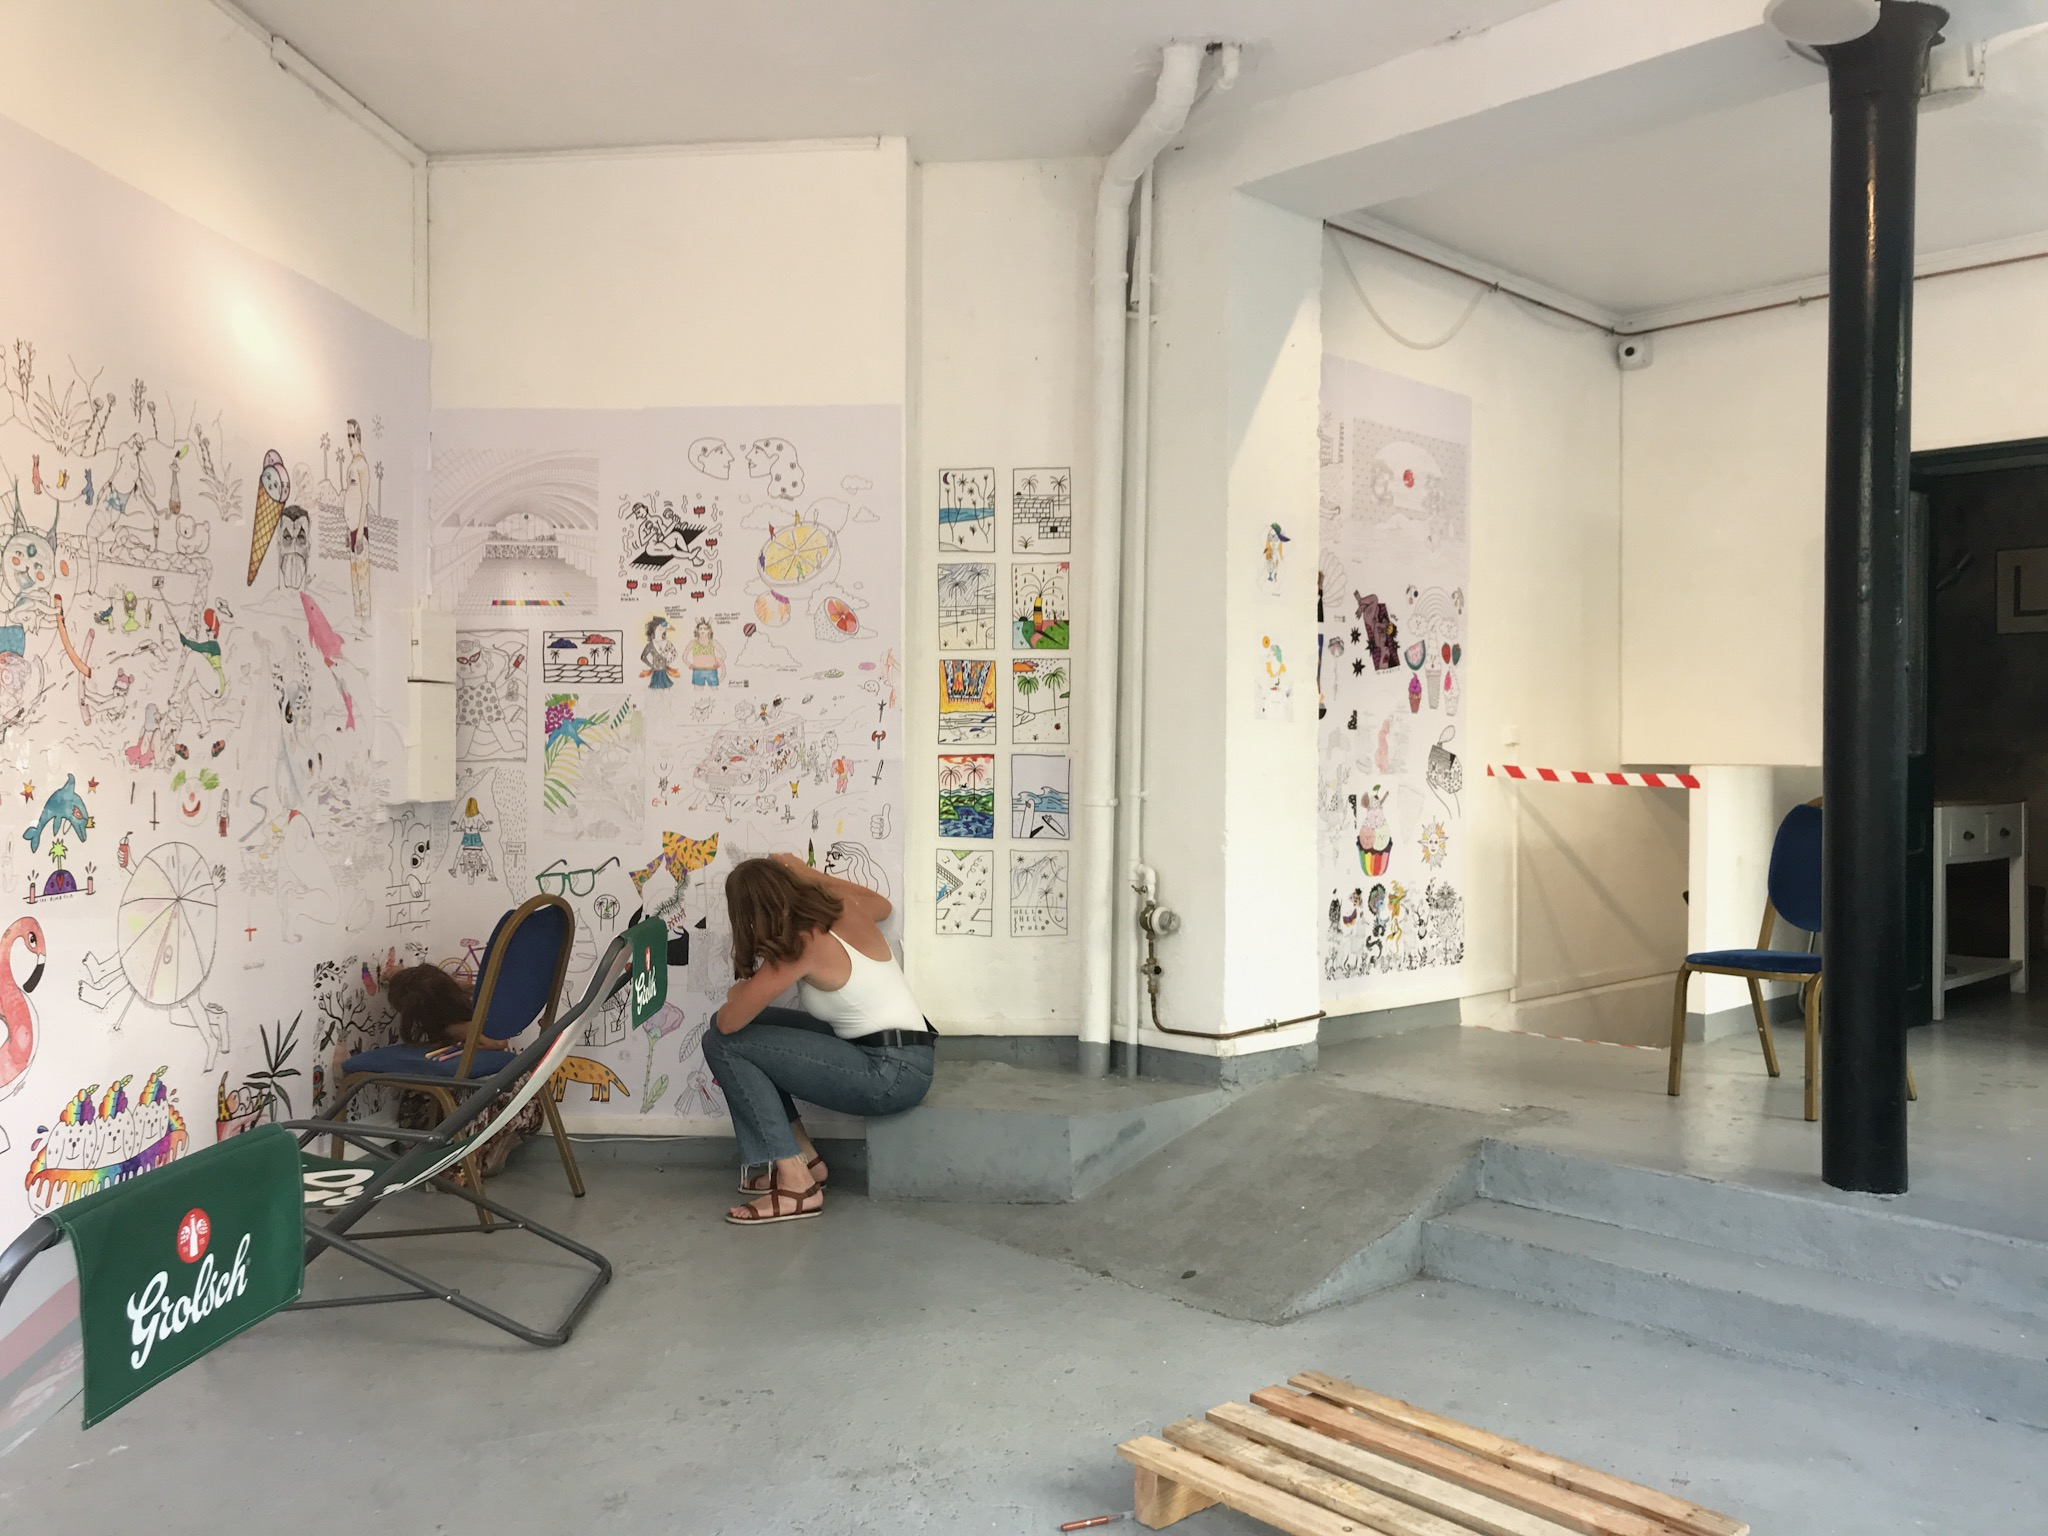 Colouring-in exhibition at Le Floreal Belleville